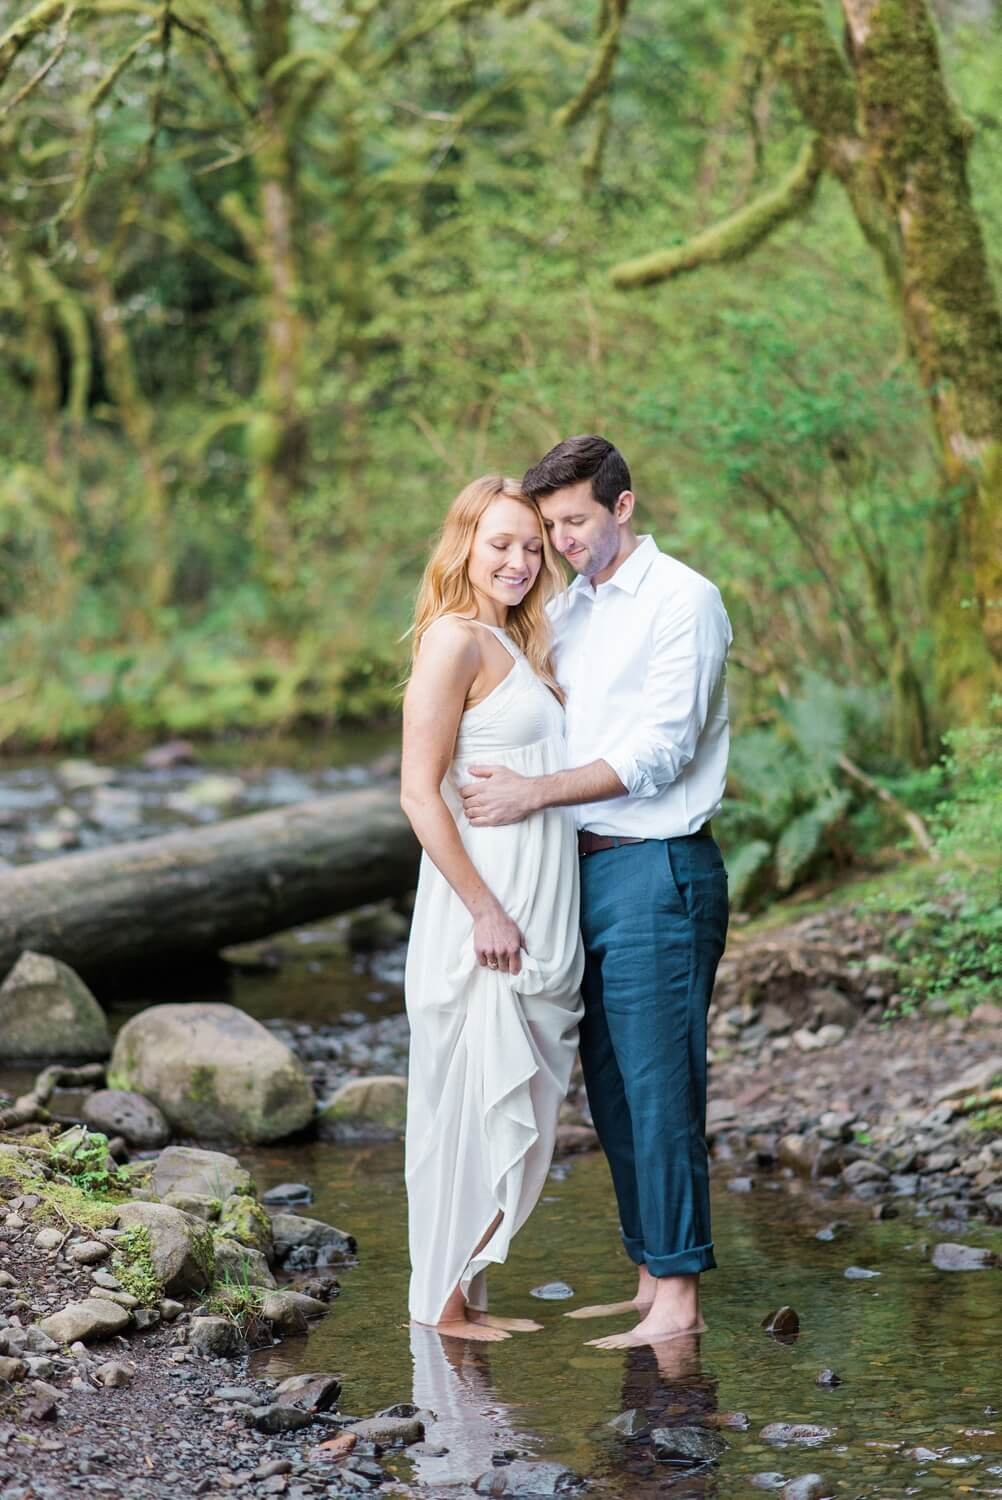 portland-engagement-columbia-river-gorge-oneonta-latourell-waterfall-shelley-marie-photo-156_cr.jpg